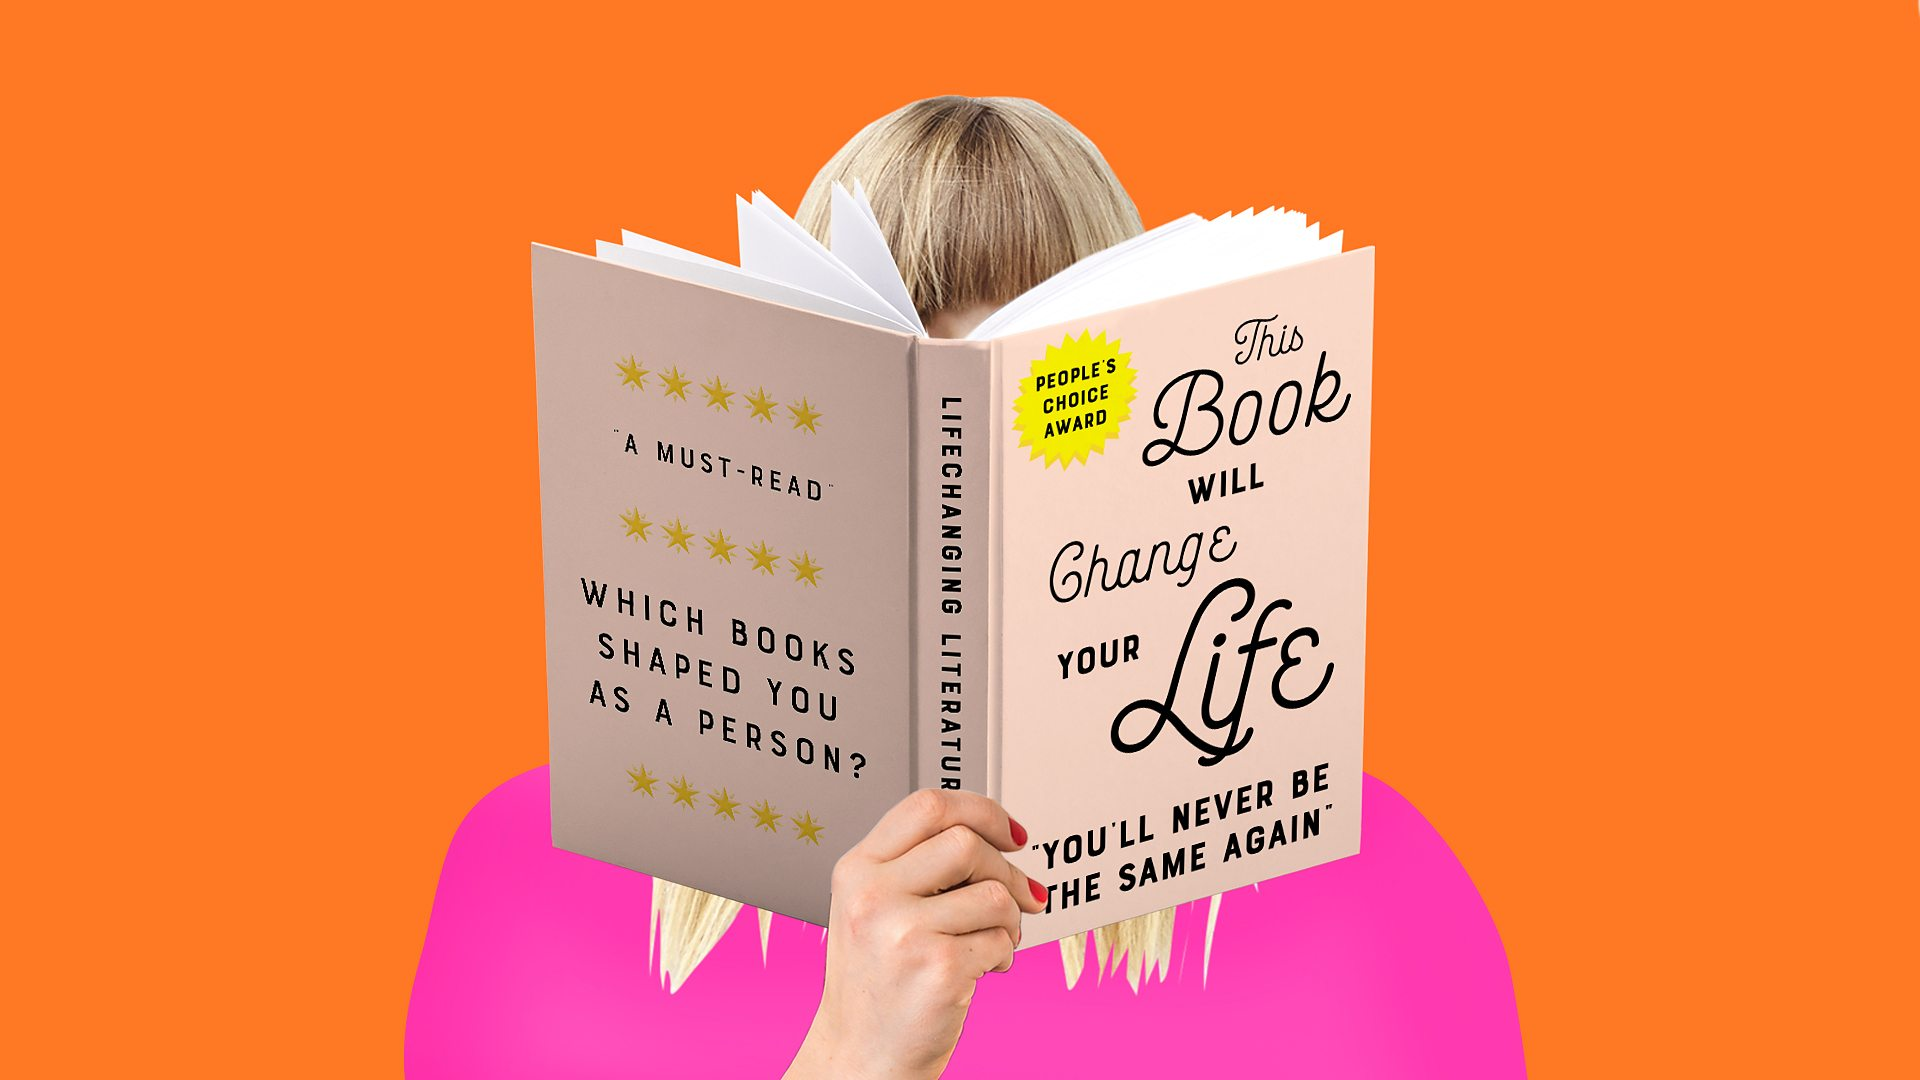 Radio 4 That Change Your Life Books - Woman's Bbc Will Five Hour